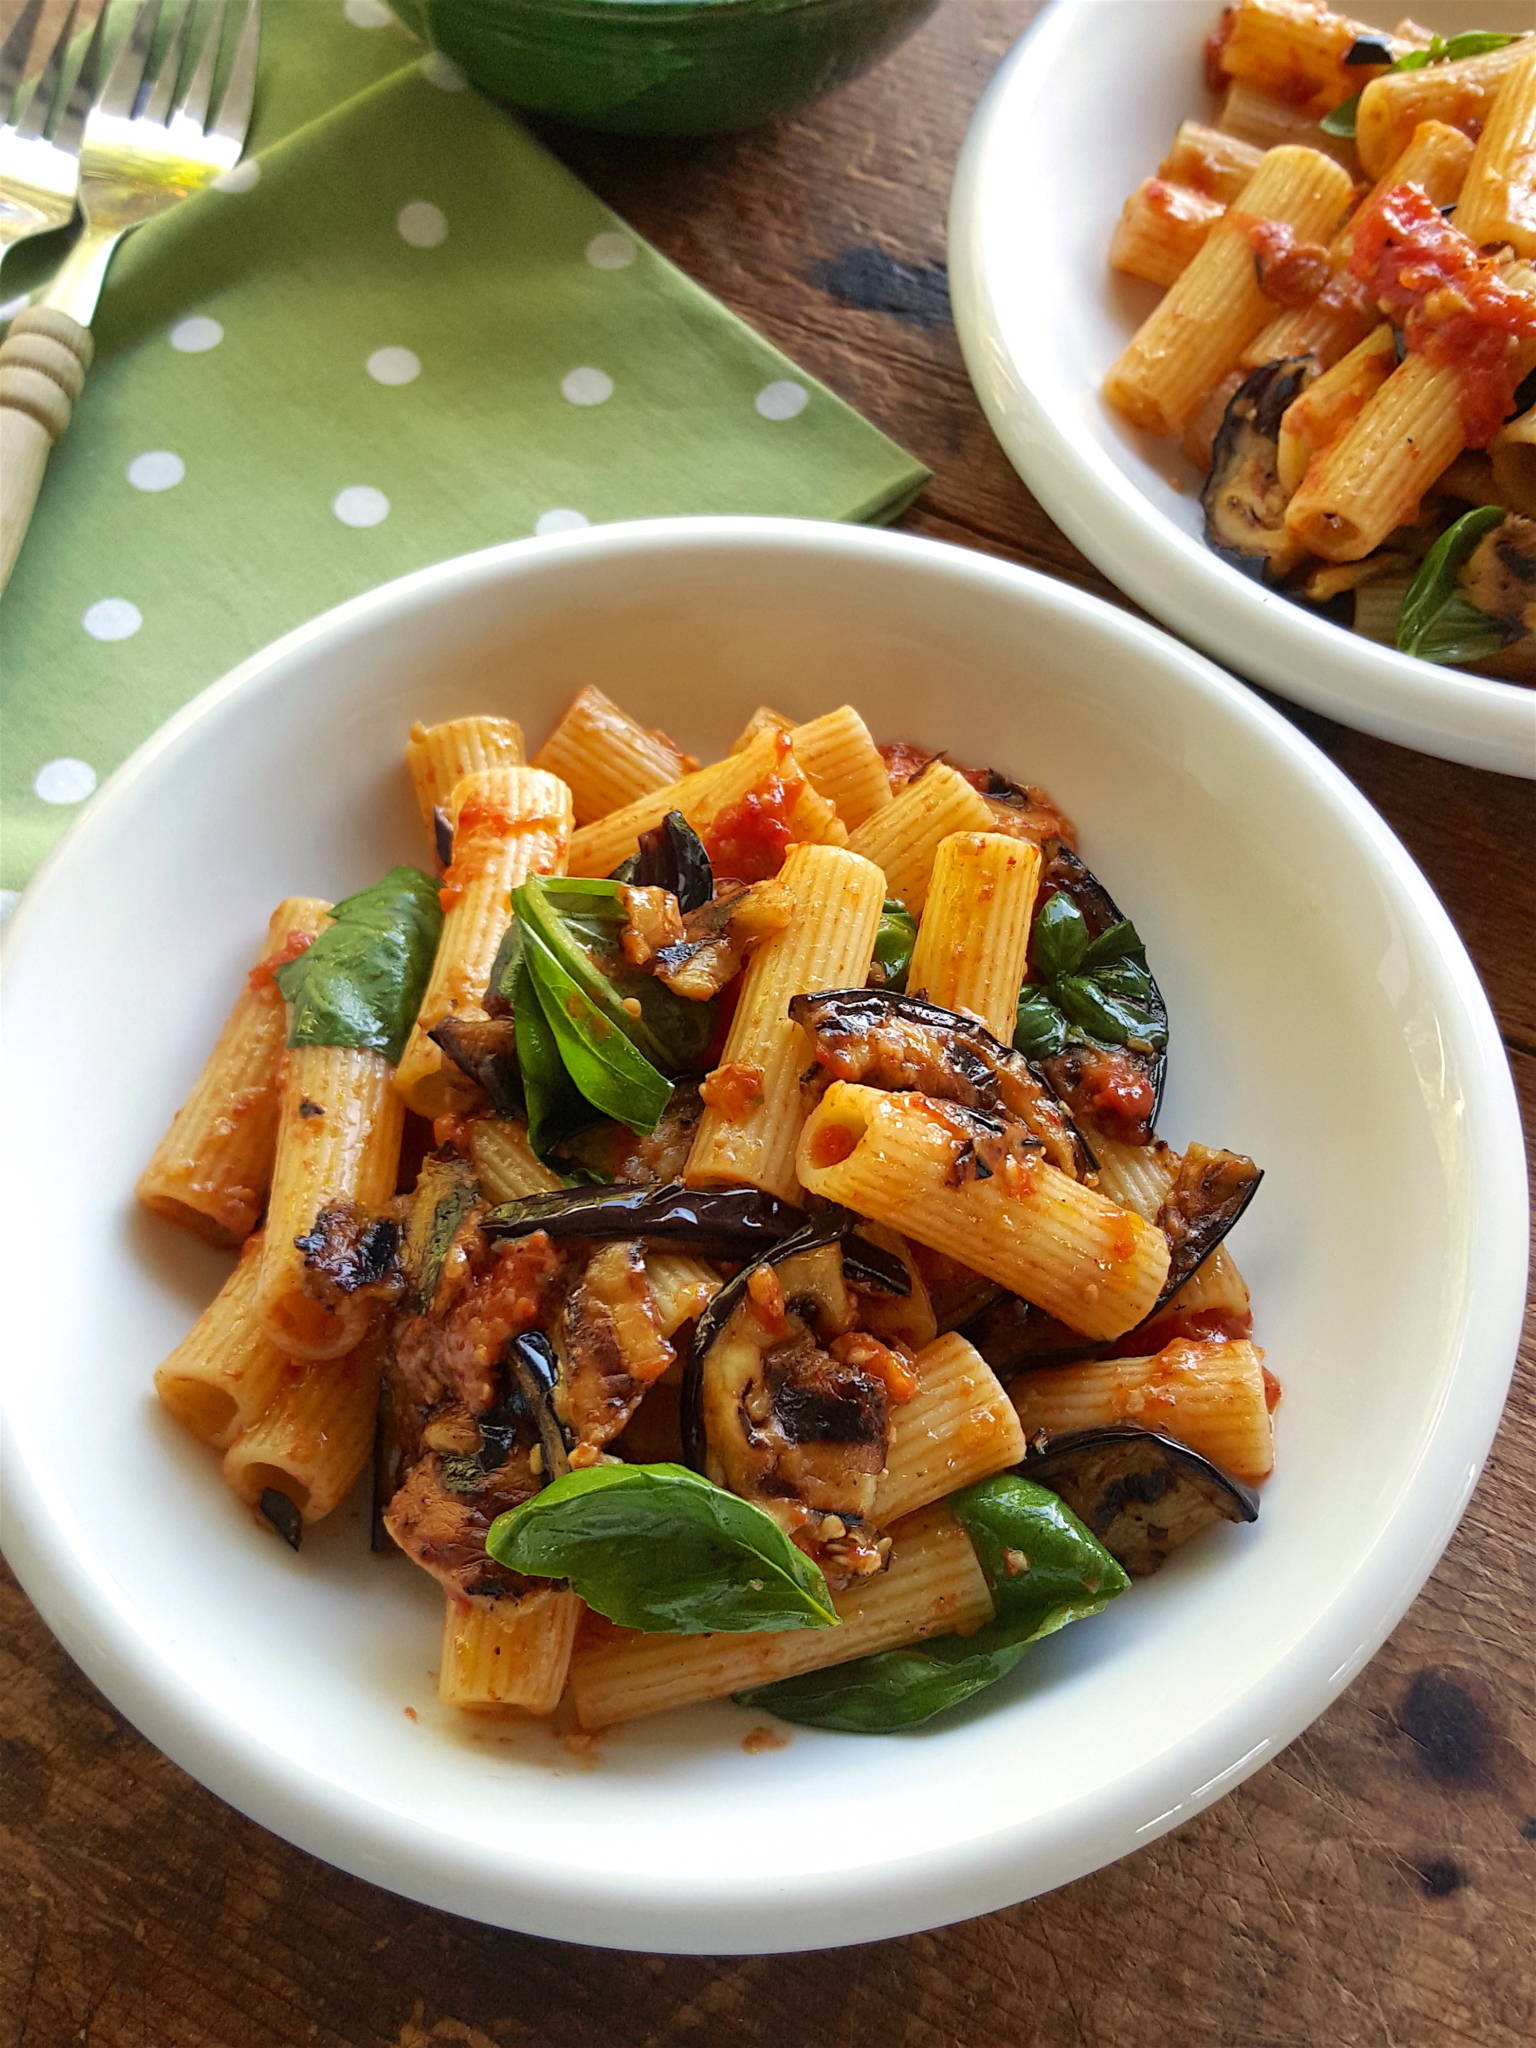 Rigatoni with Eggplant & Roasted Tomatoes